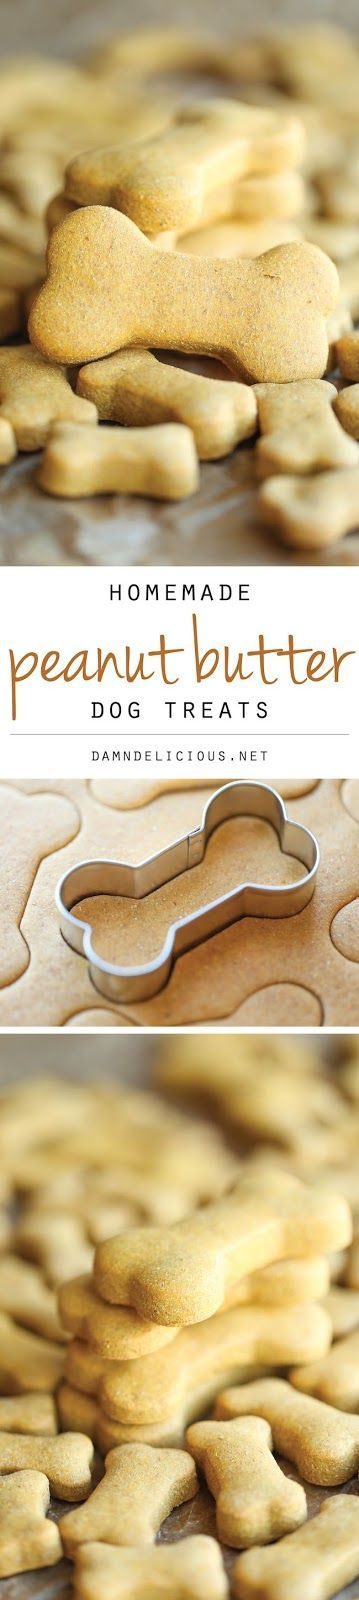 Homemade Peanut Butter Dog Treats That You Need To Try Now | DIY Beauty Fashion